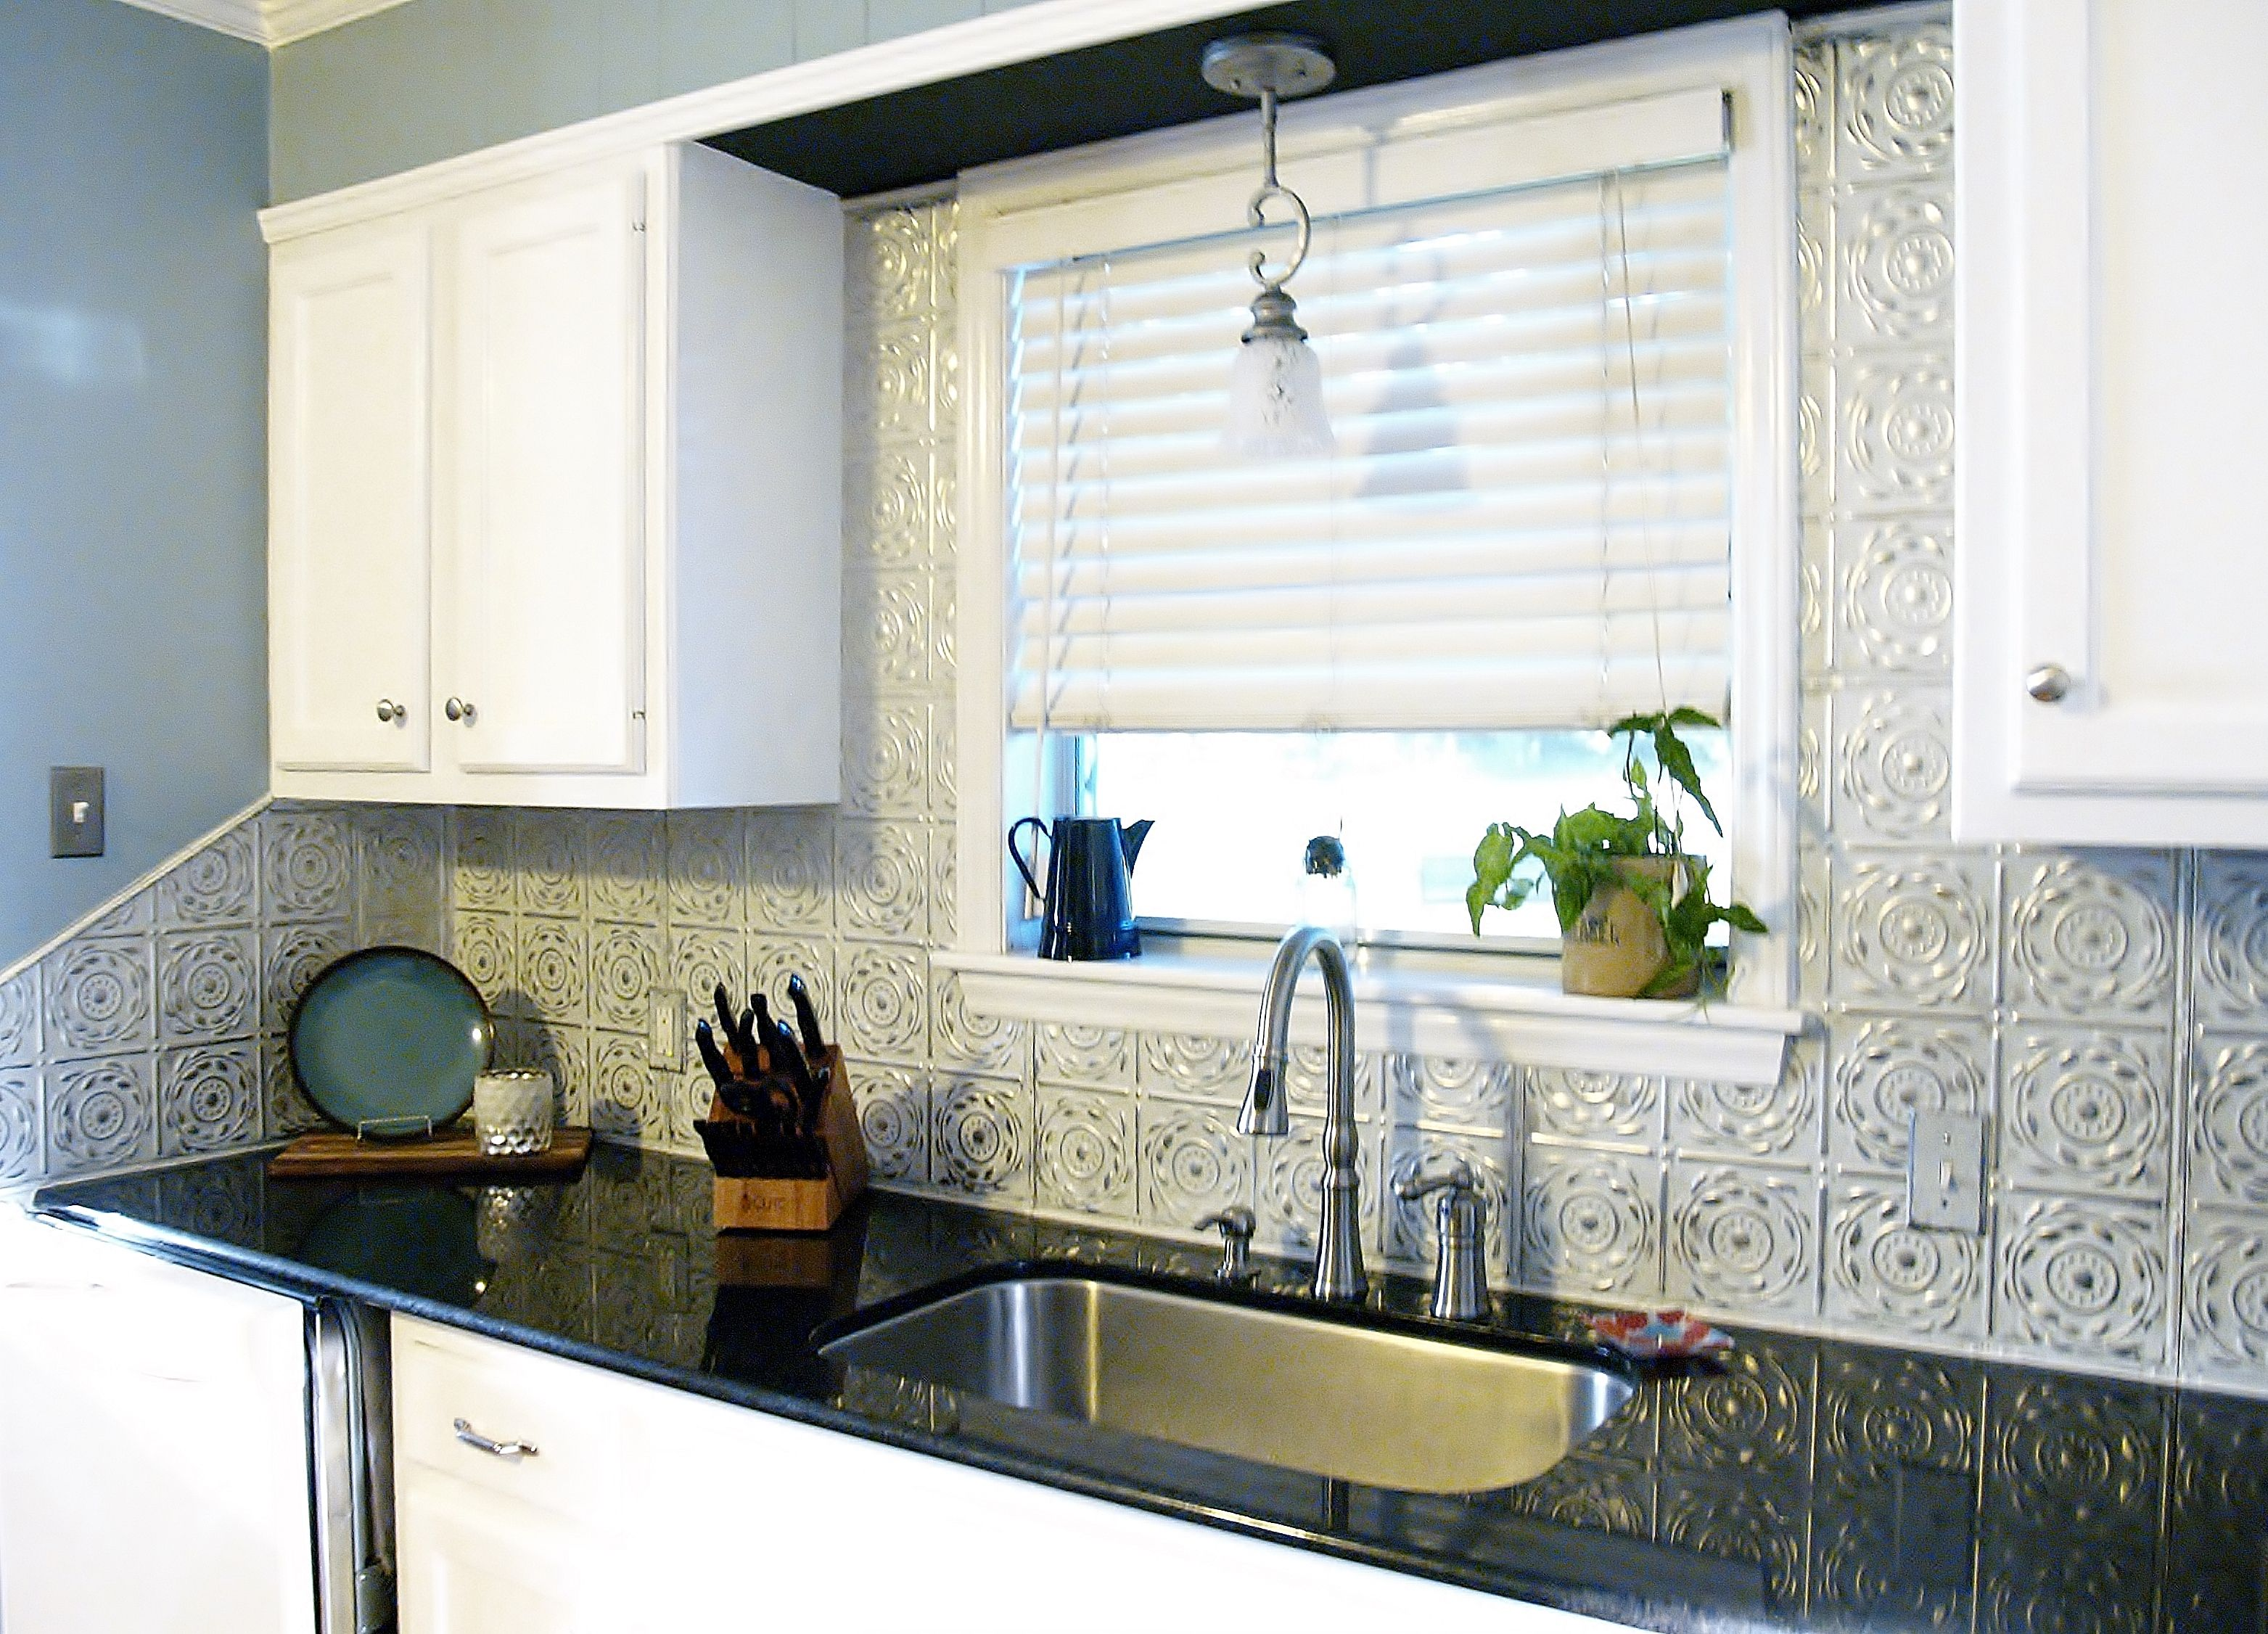 - Easy, DIY Kitchen Backsplashes That Cost Less Than $100 On Average